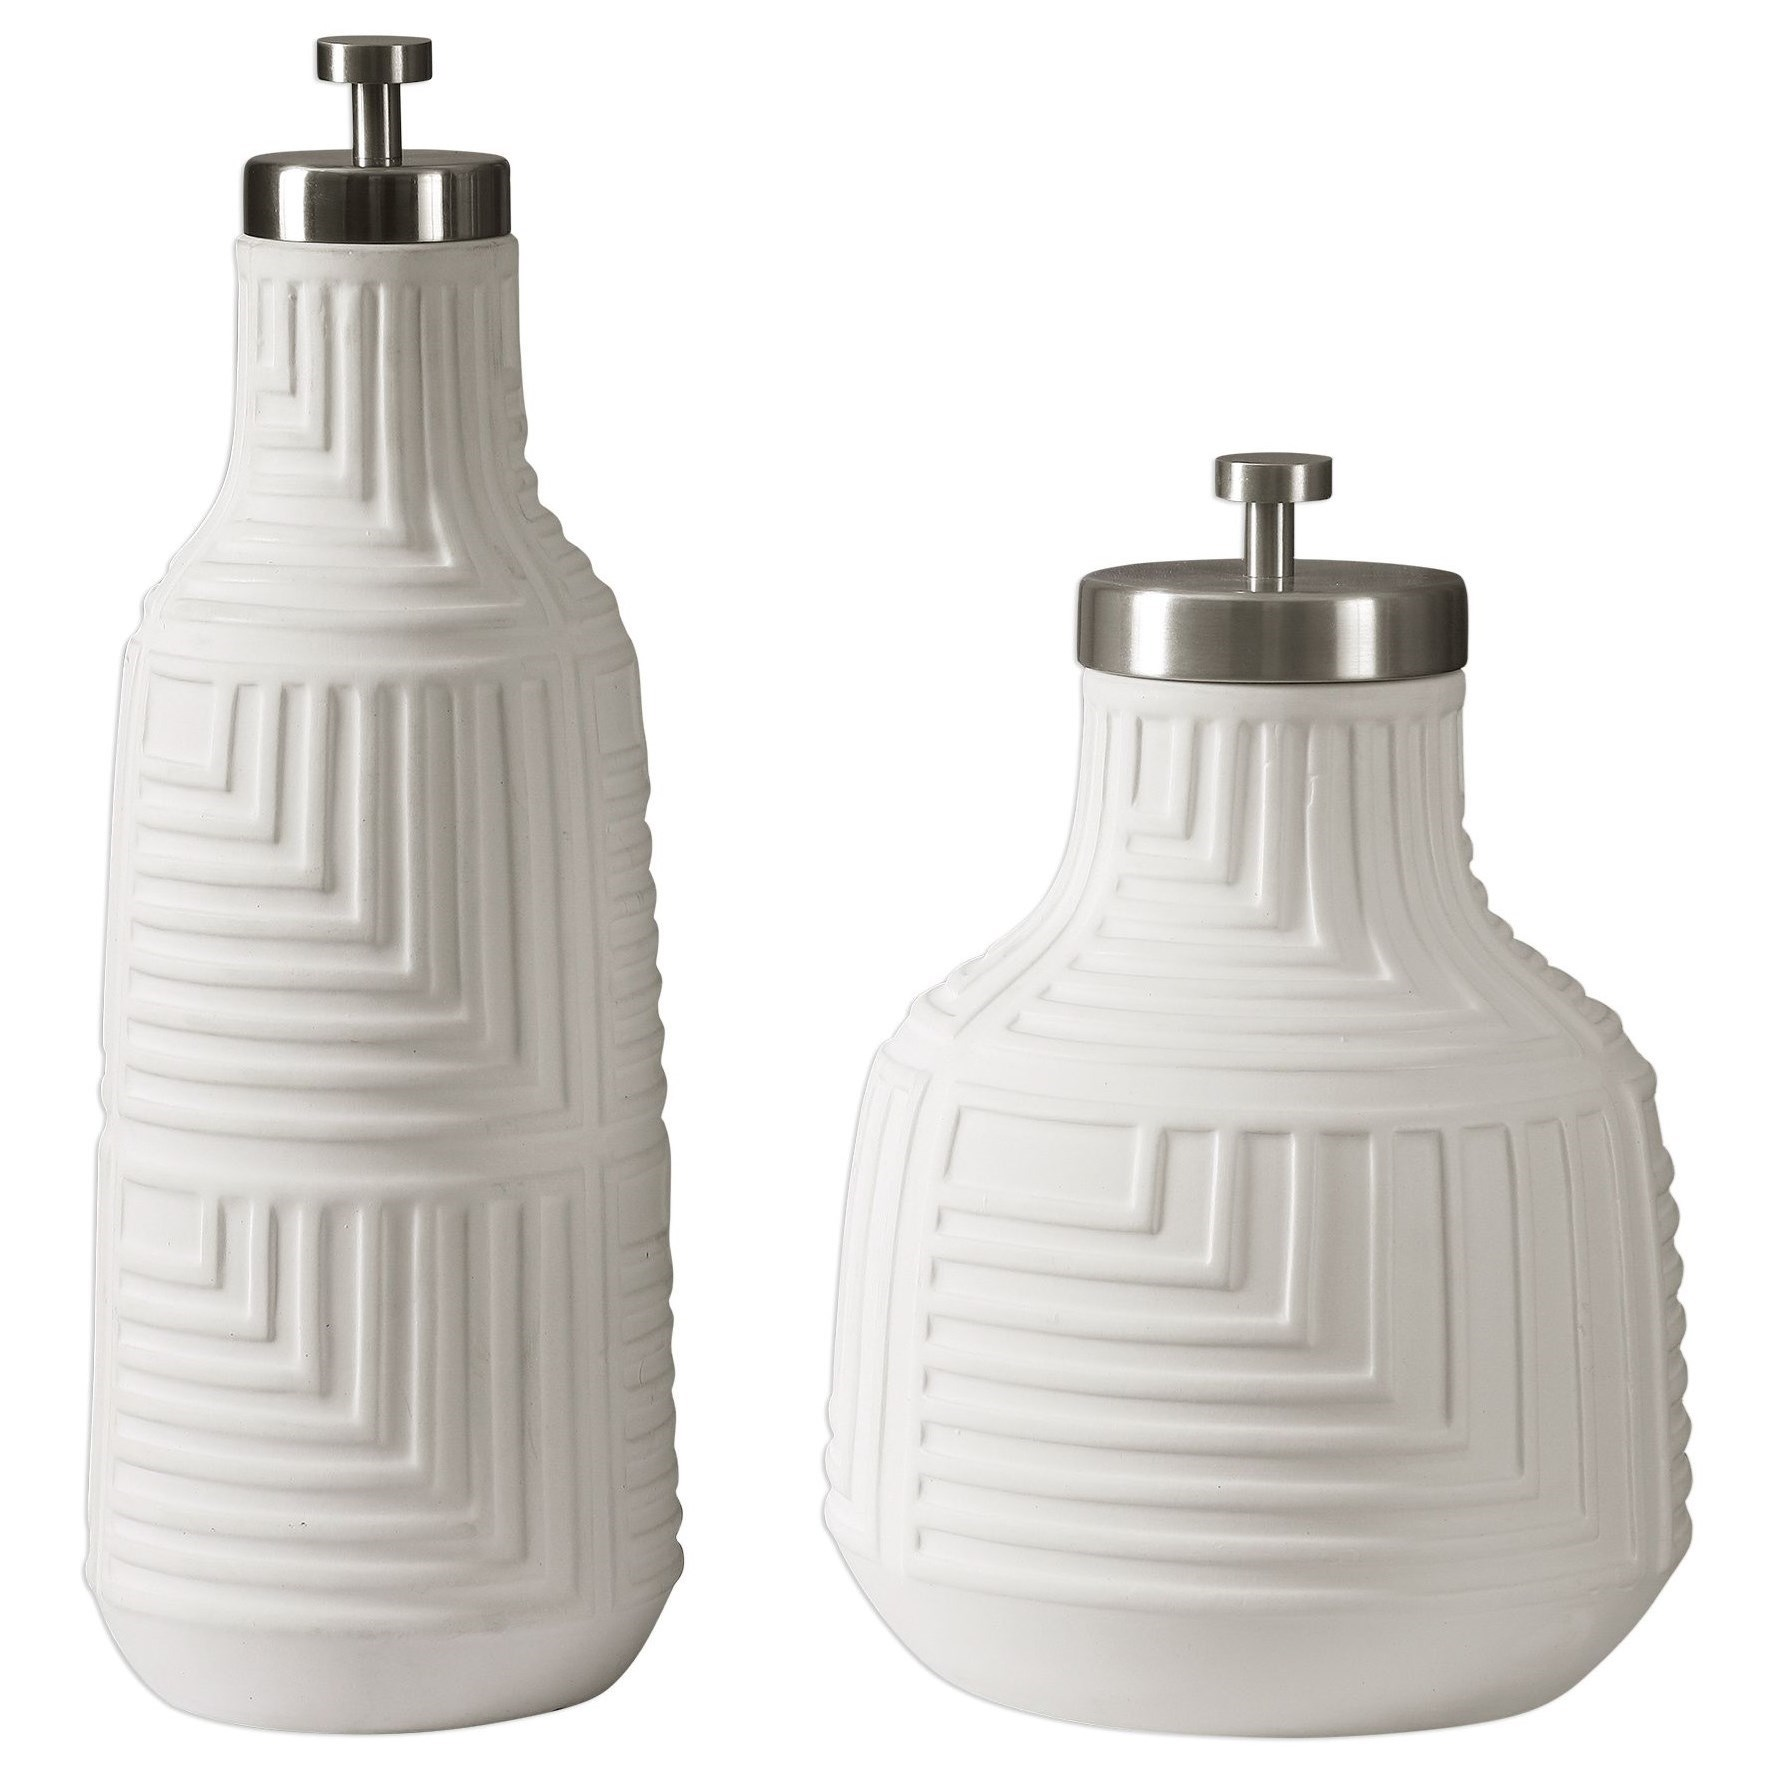 Accessories Chandran Matte White Containers S/ by Uttermost at Dunk & Bright Furniture